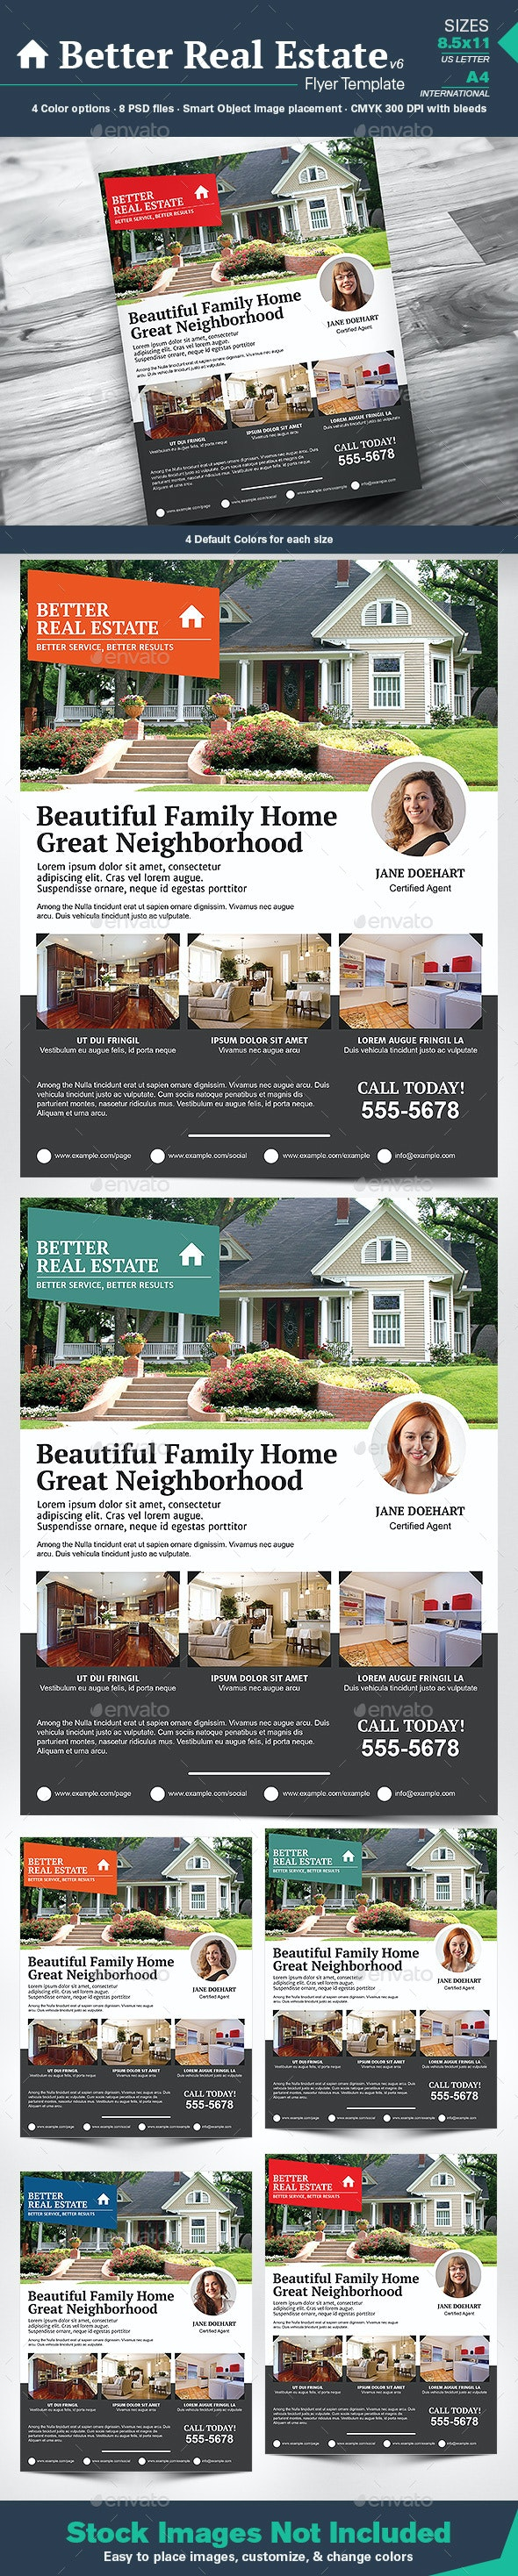 Better Real Estate Flyer Template v6 - Corporate Flyers